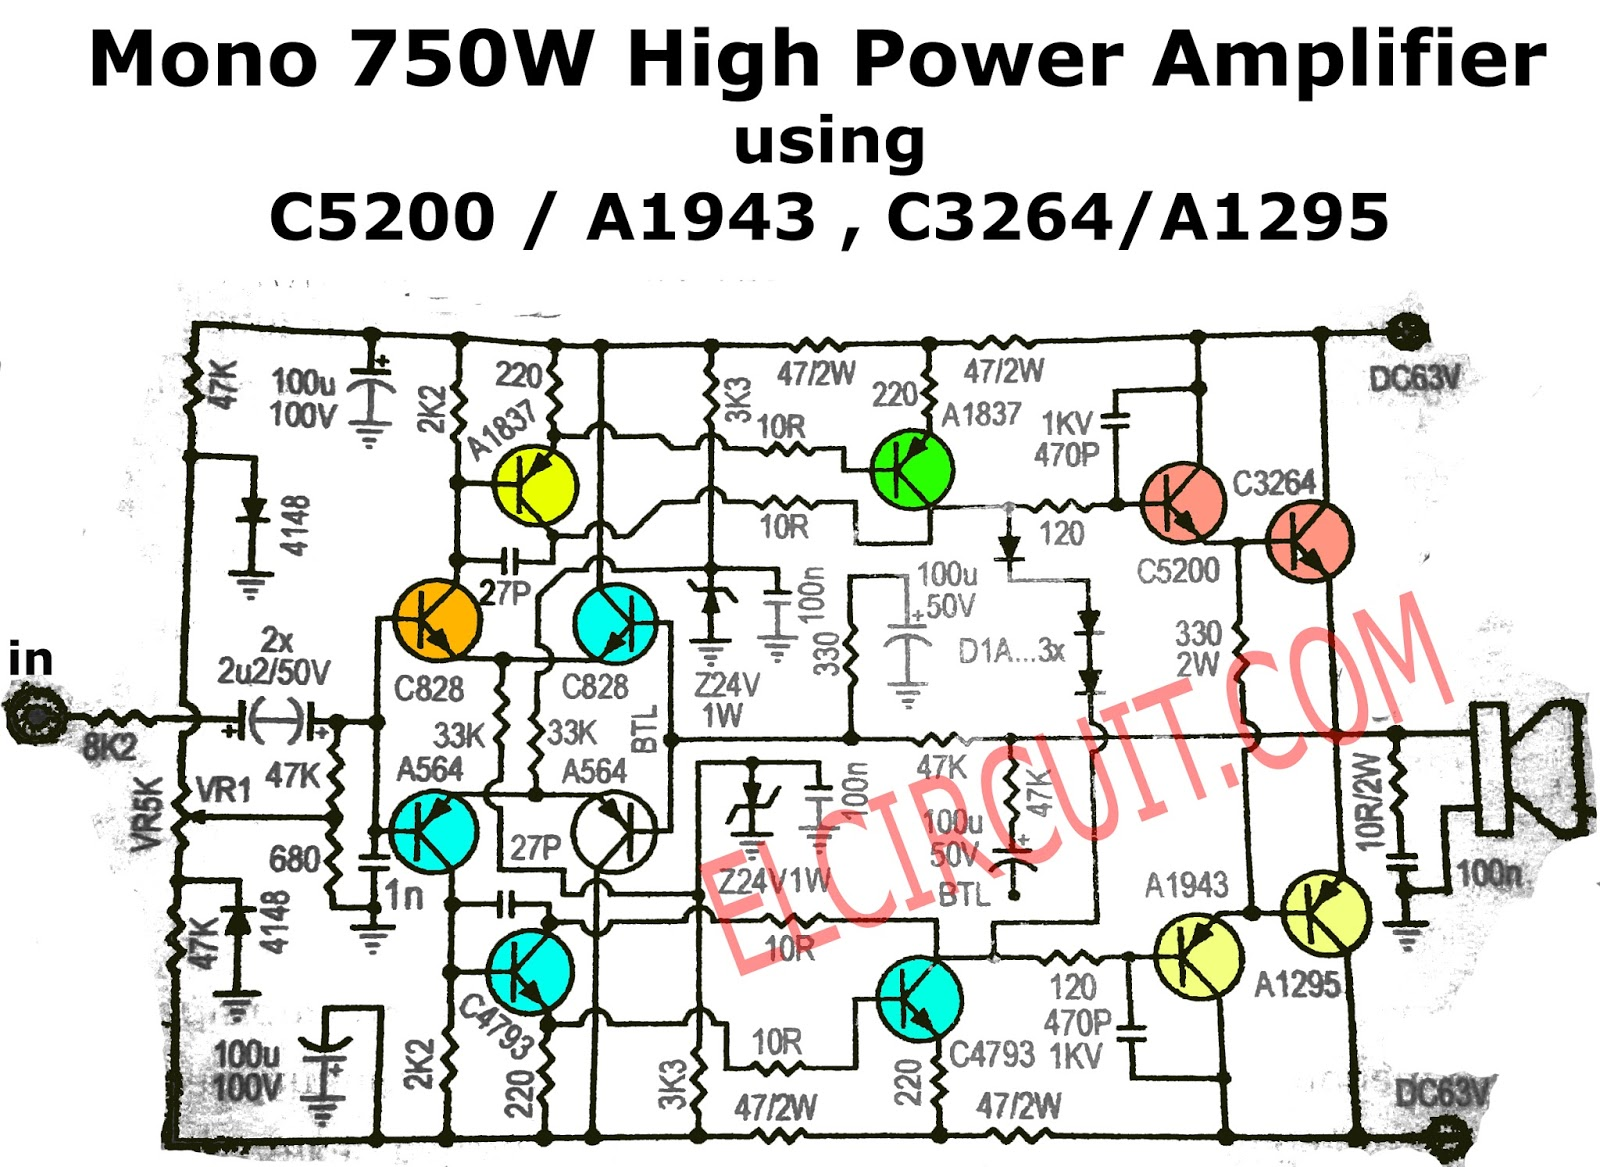 2000w power amplifier circuit diagram pathophysiology of colon cancer 750w mono schematic and pcb electronic